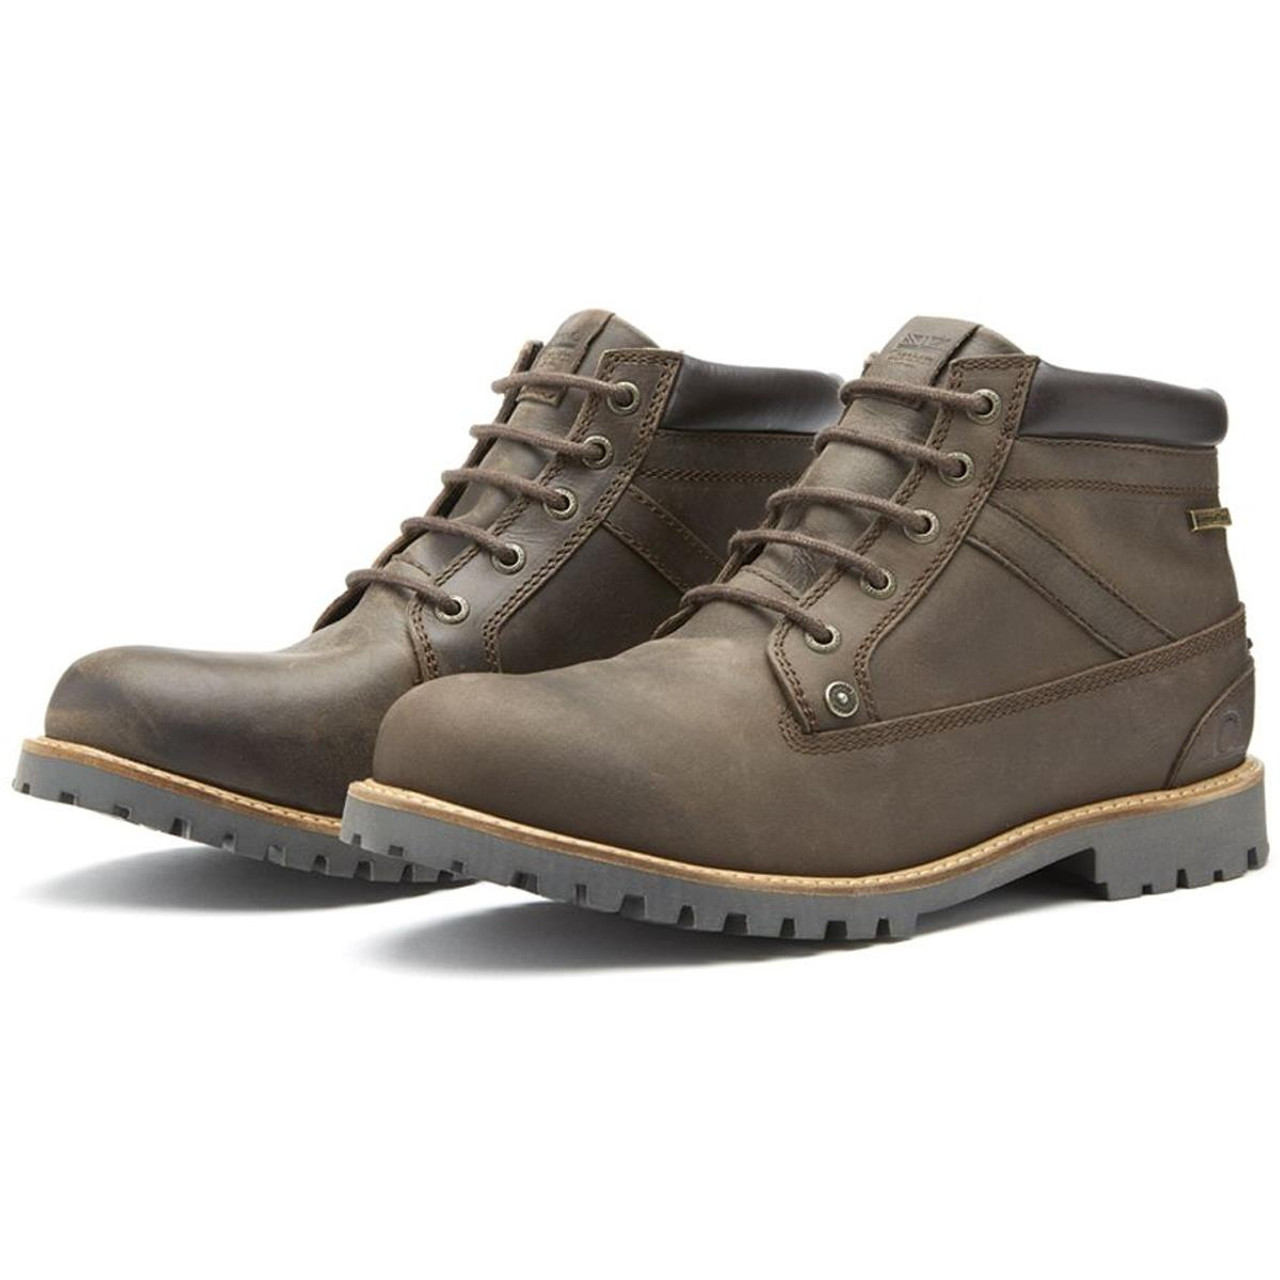 Chatham Grampian WP Ankle Boots